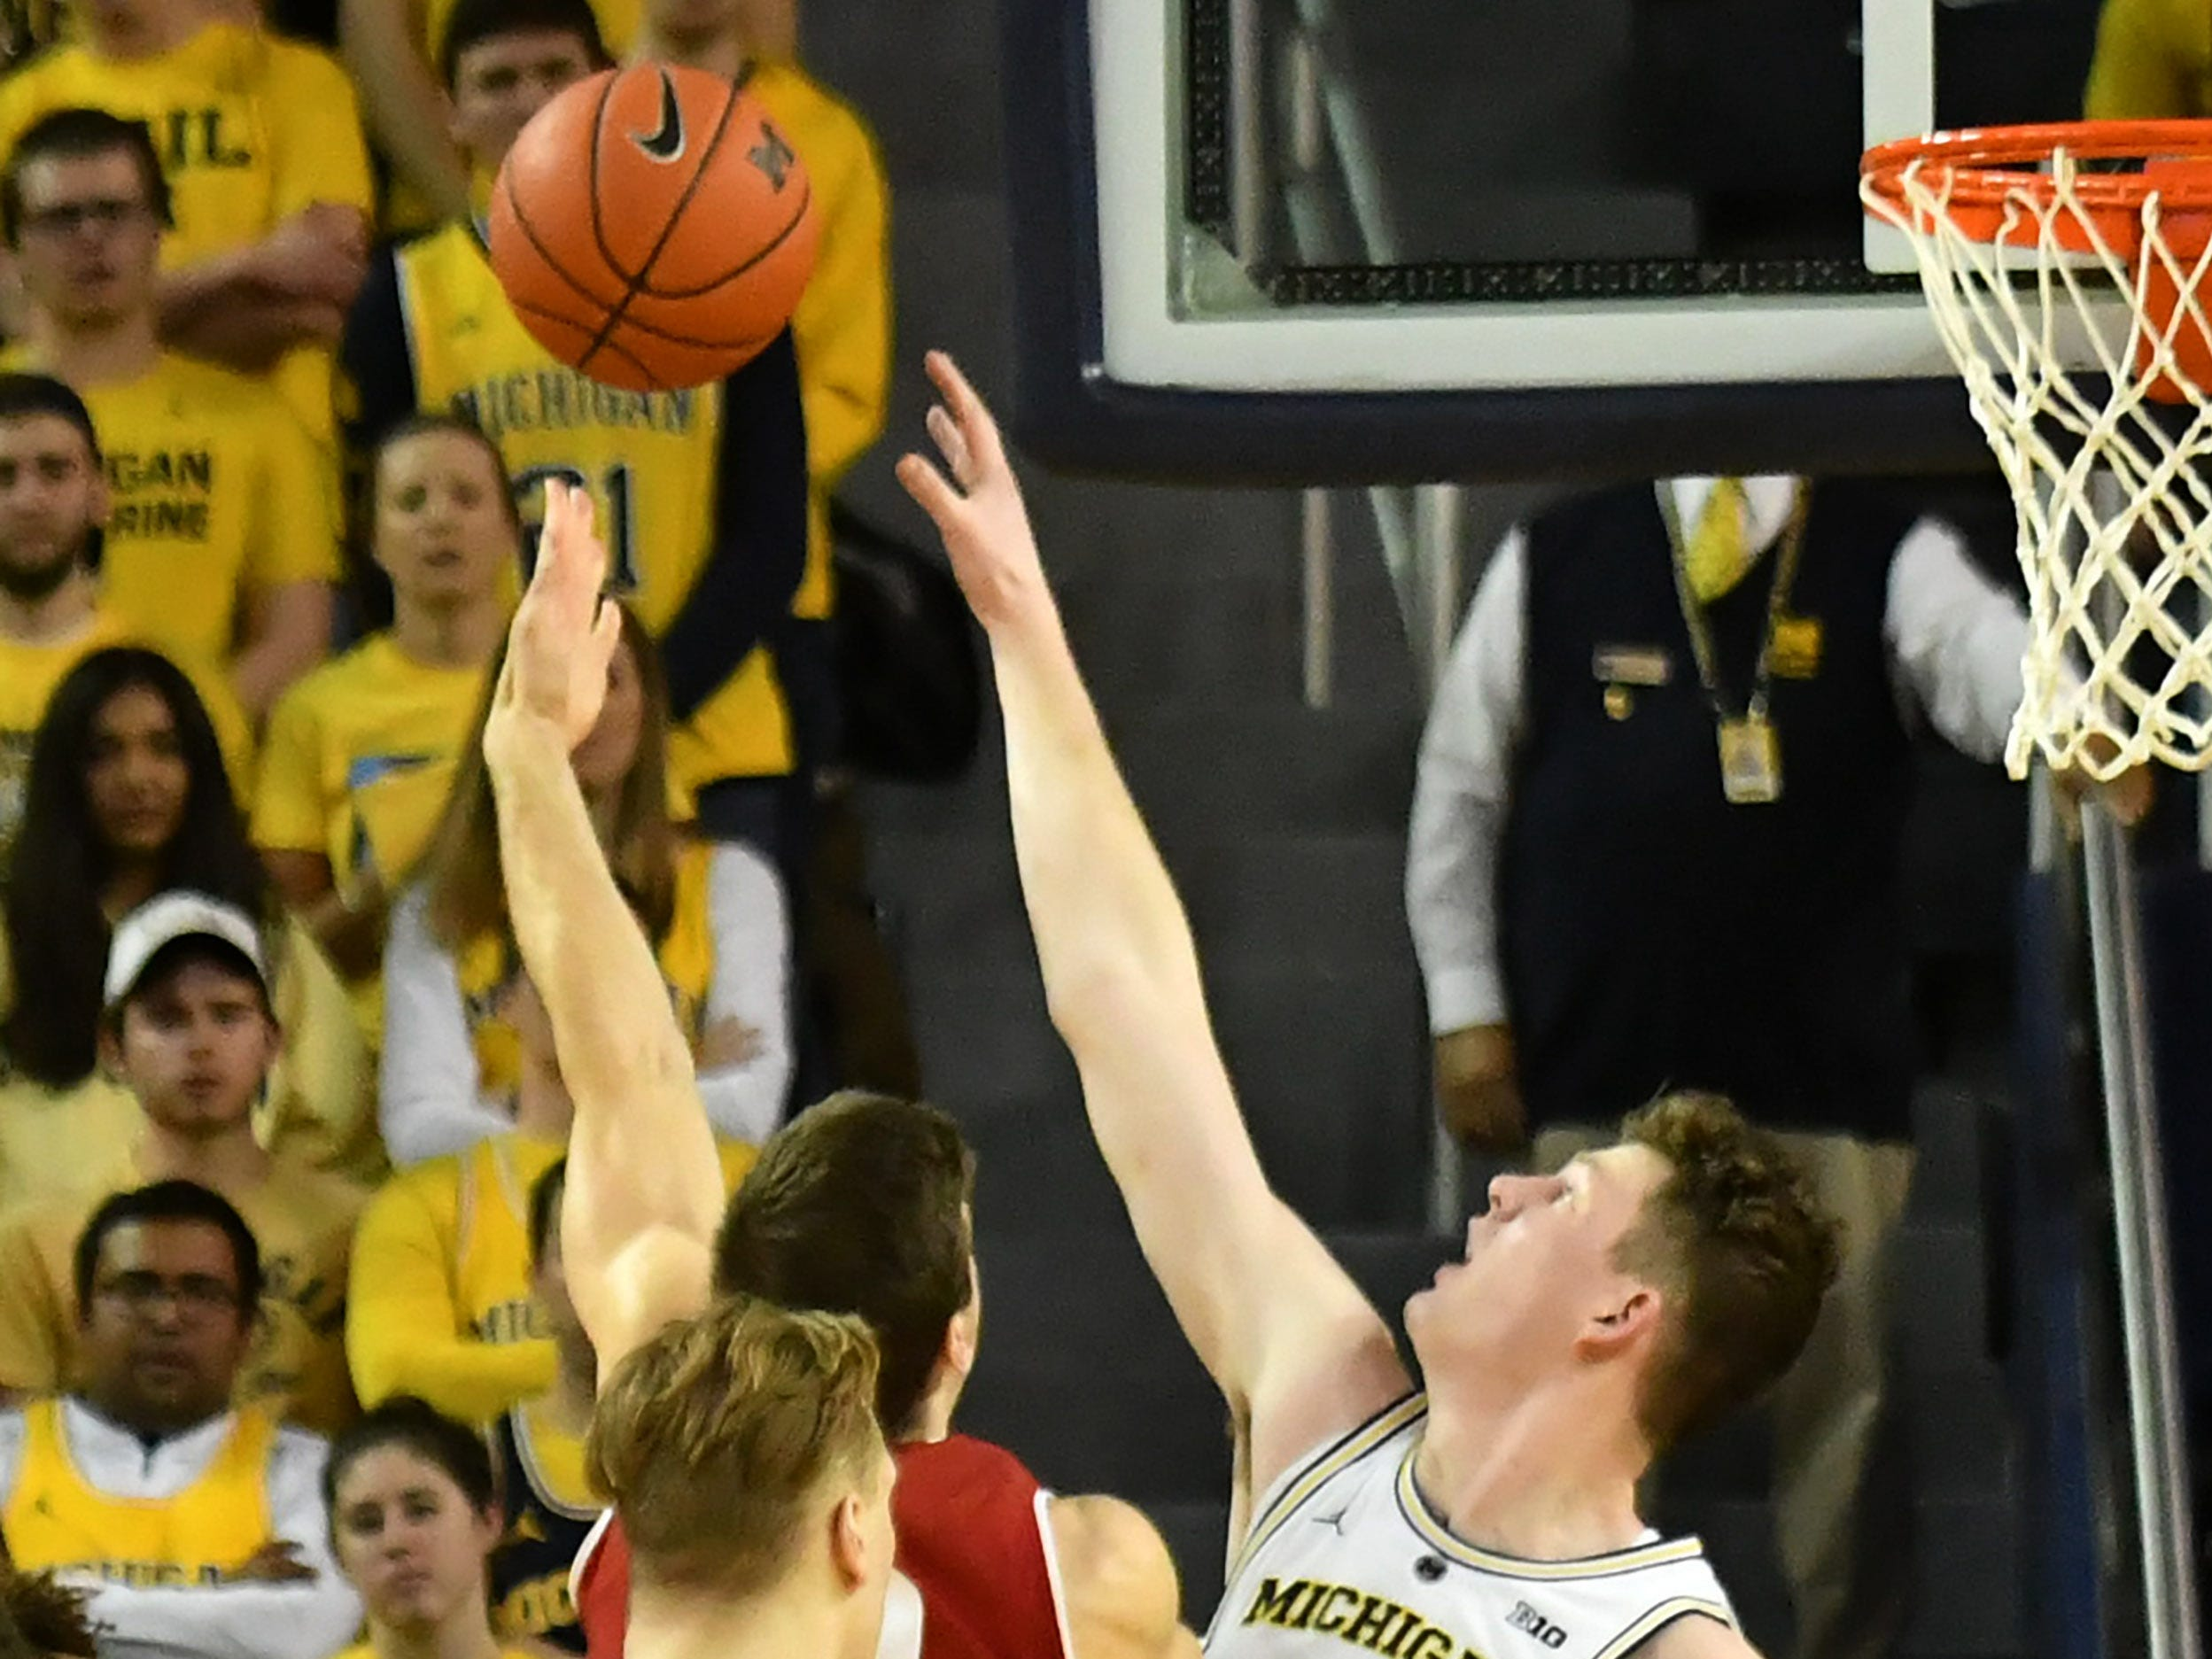 Michigan center Jon Teske (15) defends a shot by Wisconsin forward Ethan Happ (22) in the second half.